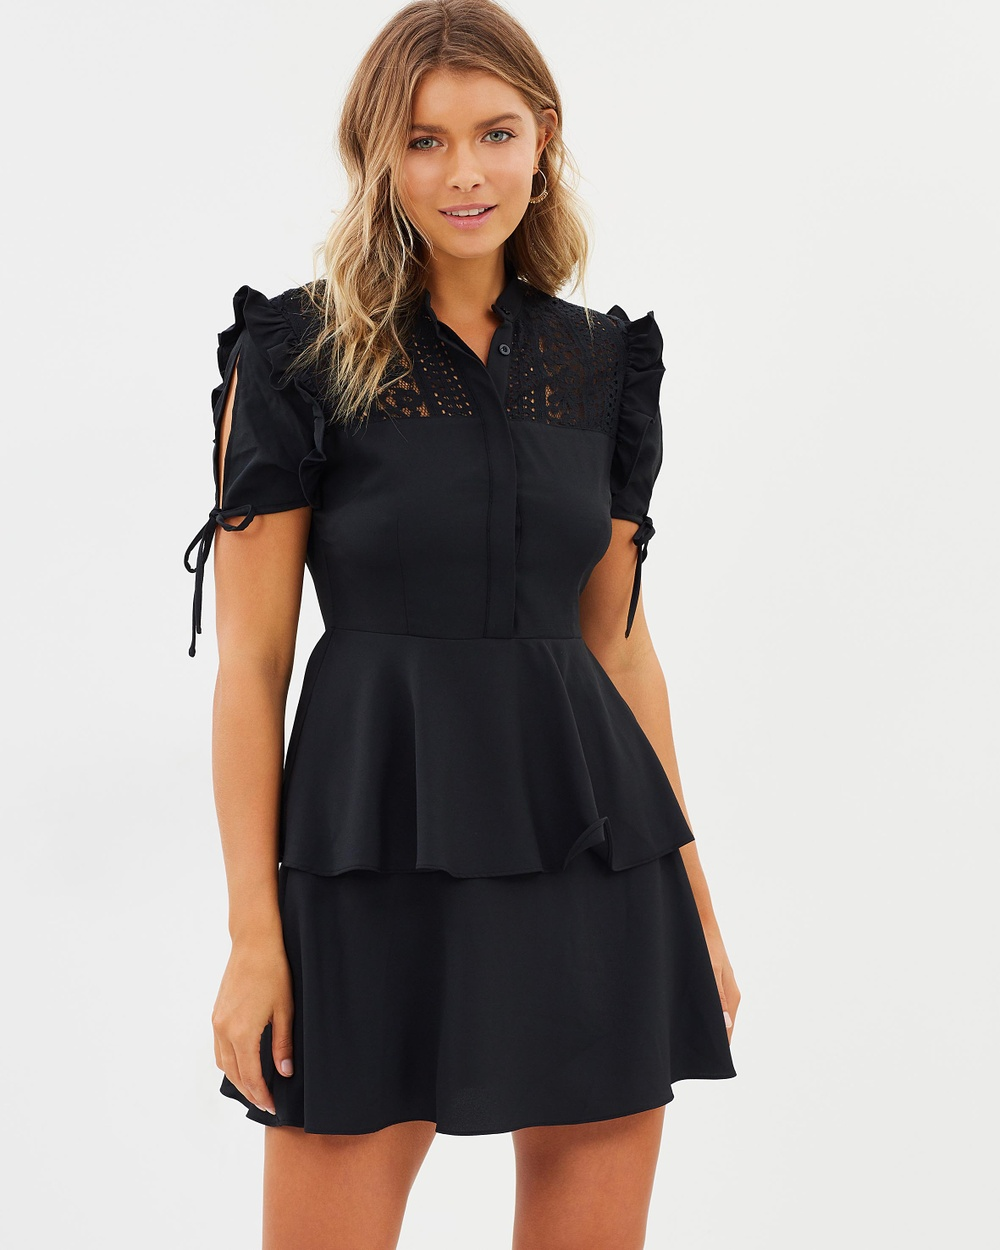 Atmos & Here ICONIC EXCLUSIVE Nayeli Frill Mini Dress Dresses Black ICONIC EXCLUSIVE Nayeli Frill Mini Dress